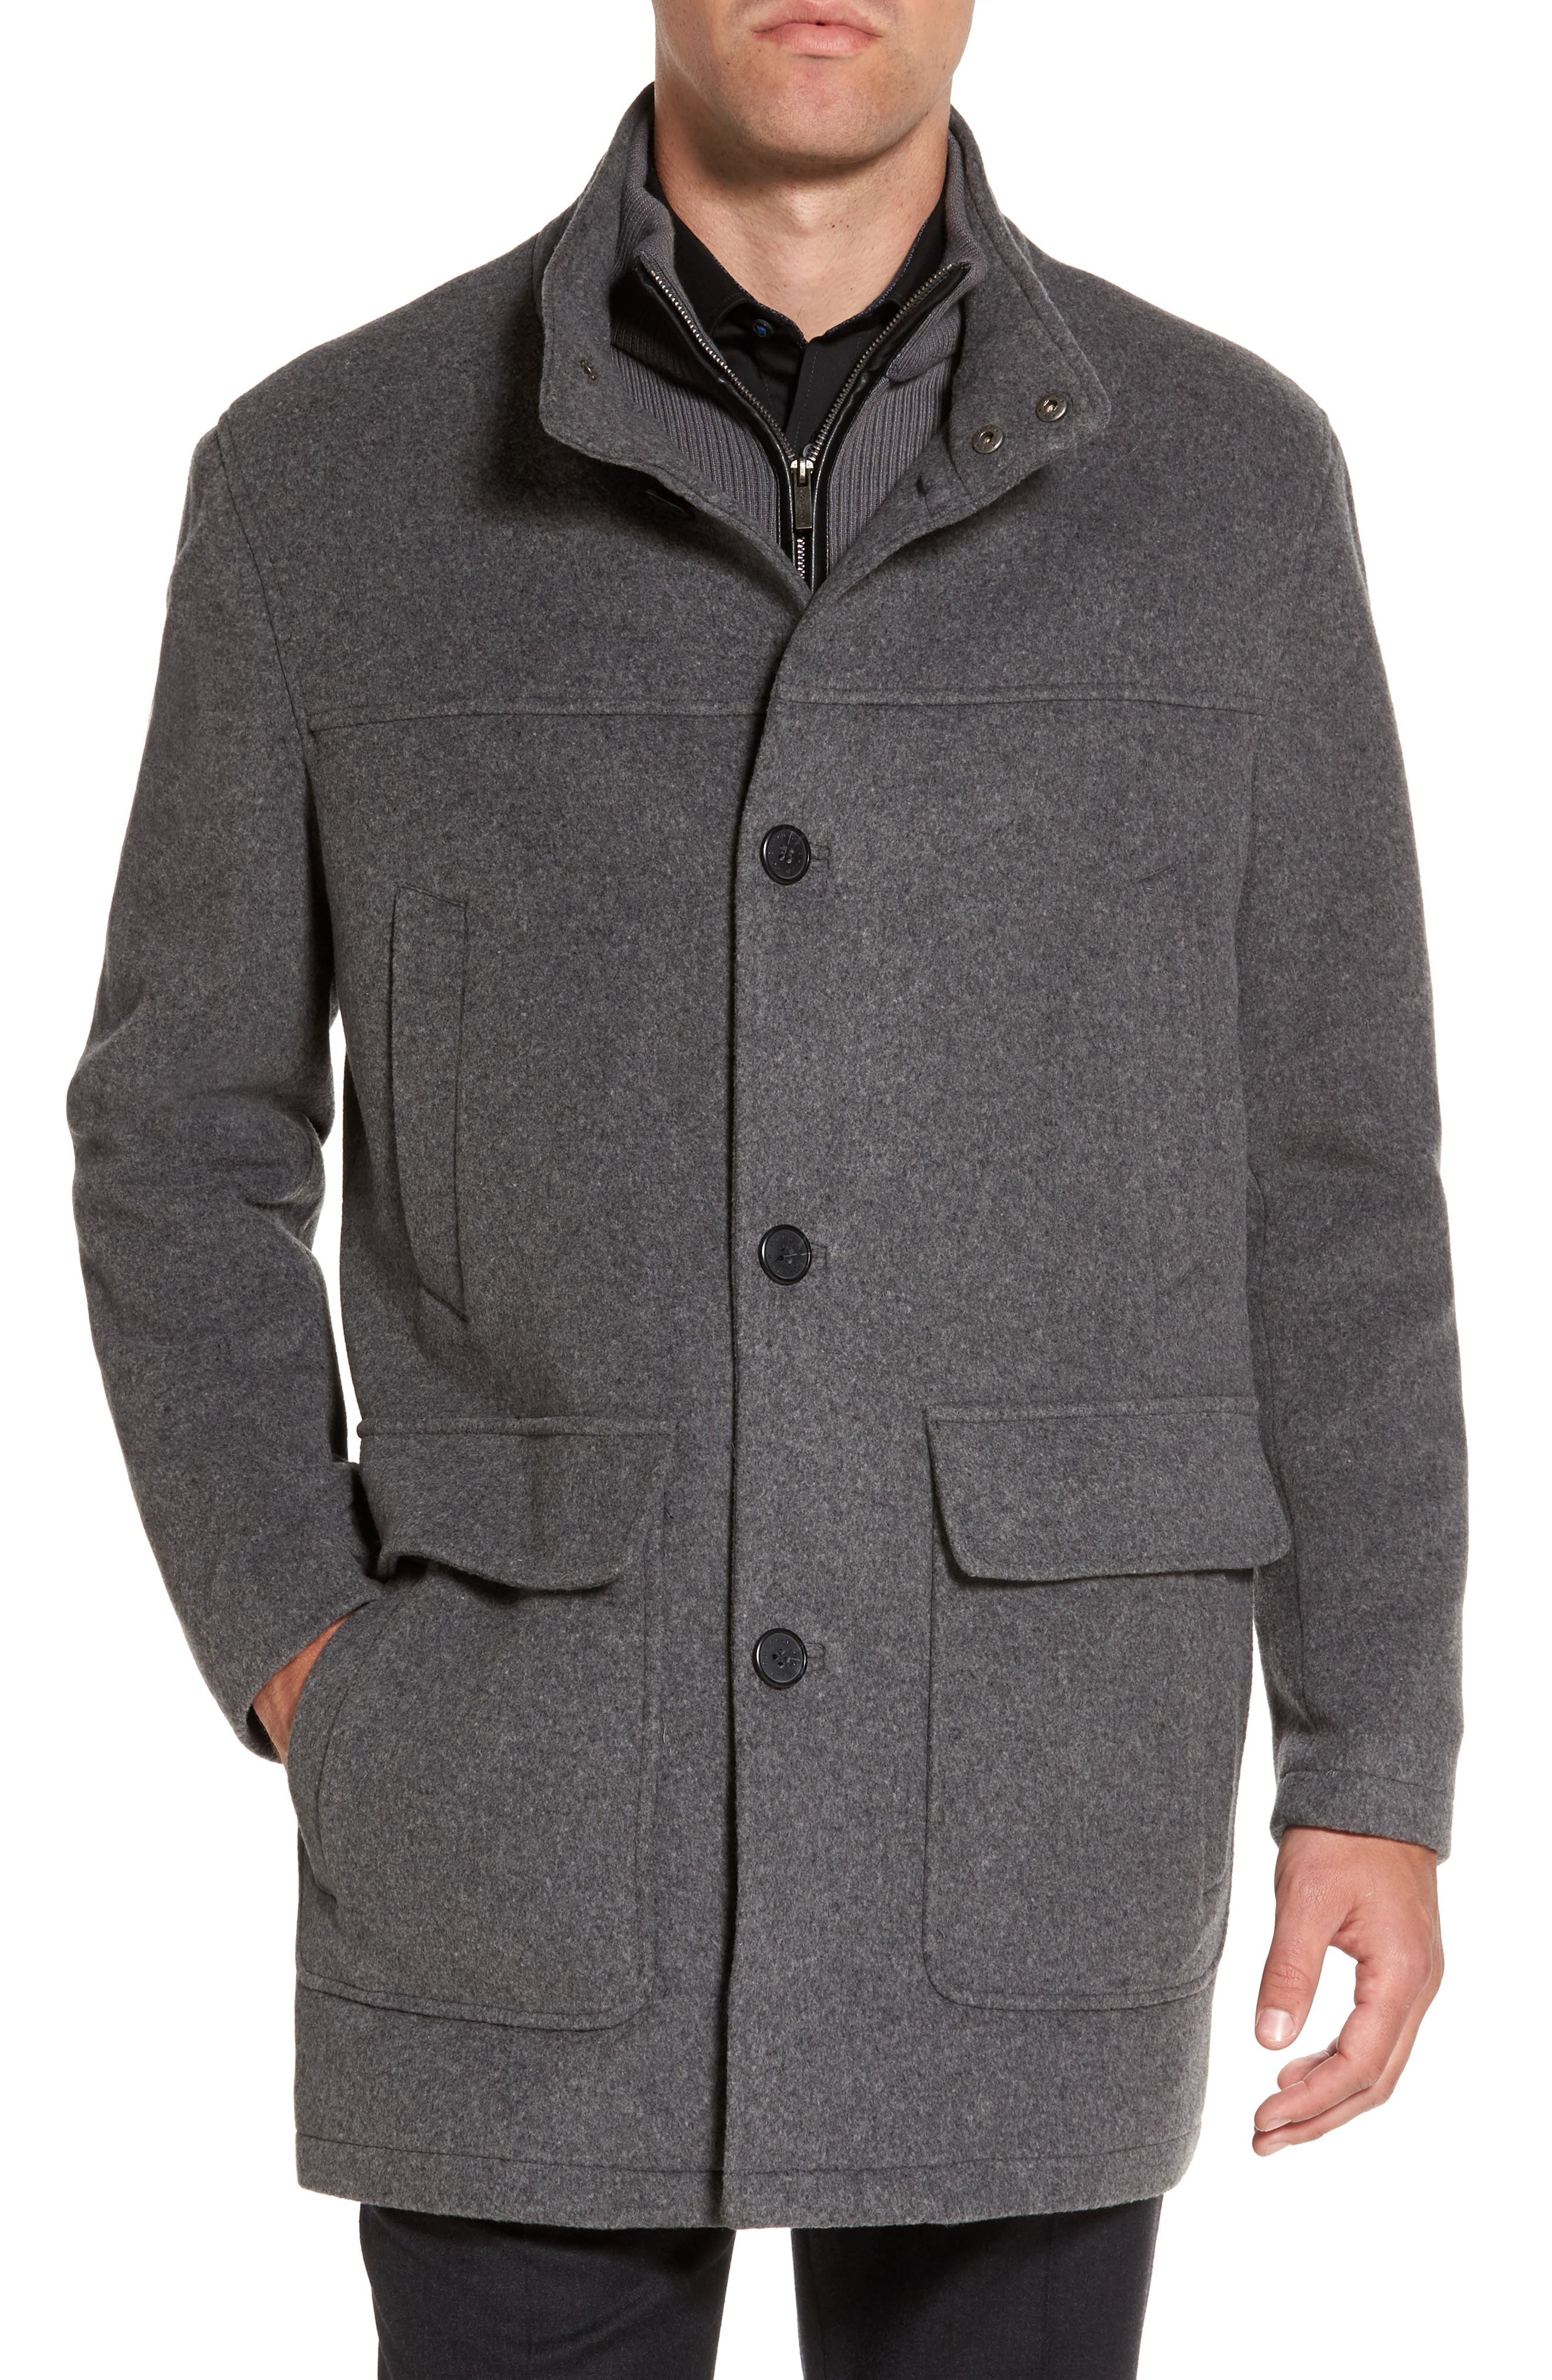 Wool Blend Topcoat with Inset Bib,                             Main thumbnail 1, color,                             Light Grey